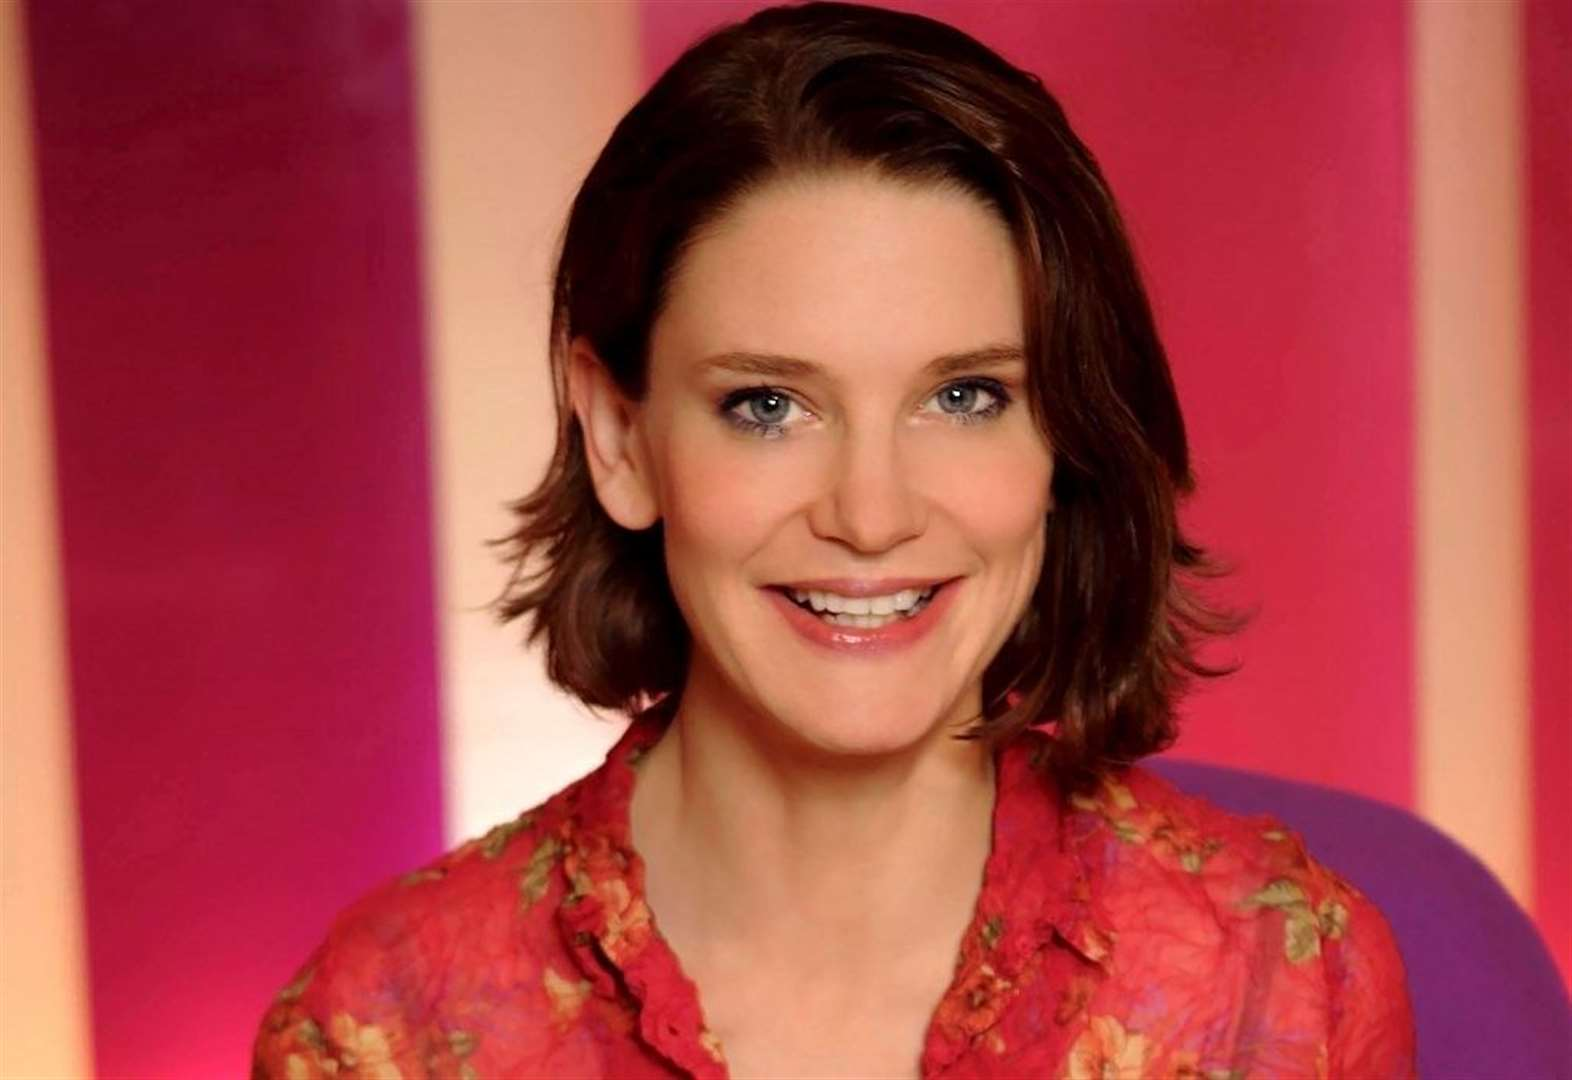 Wordsmith Susie Dent will be bringing her Secret Lives of Words show to Stamford Corn Exchange on Saturday, January 30